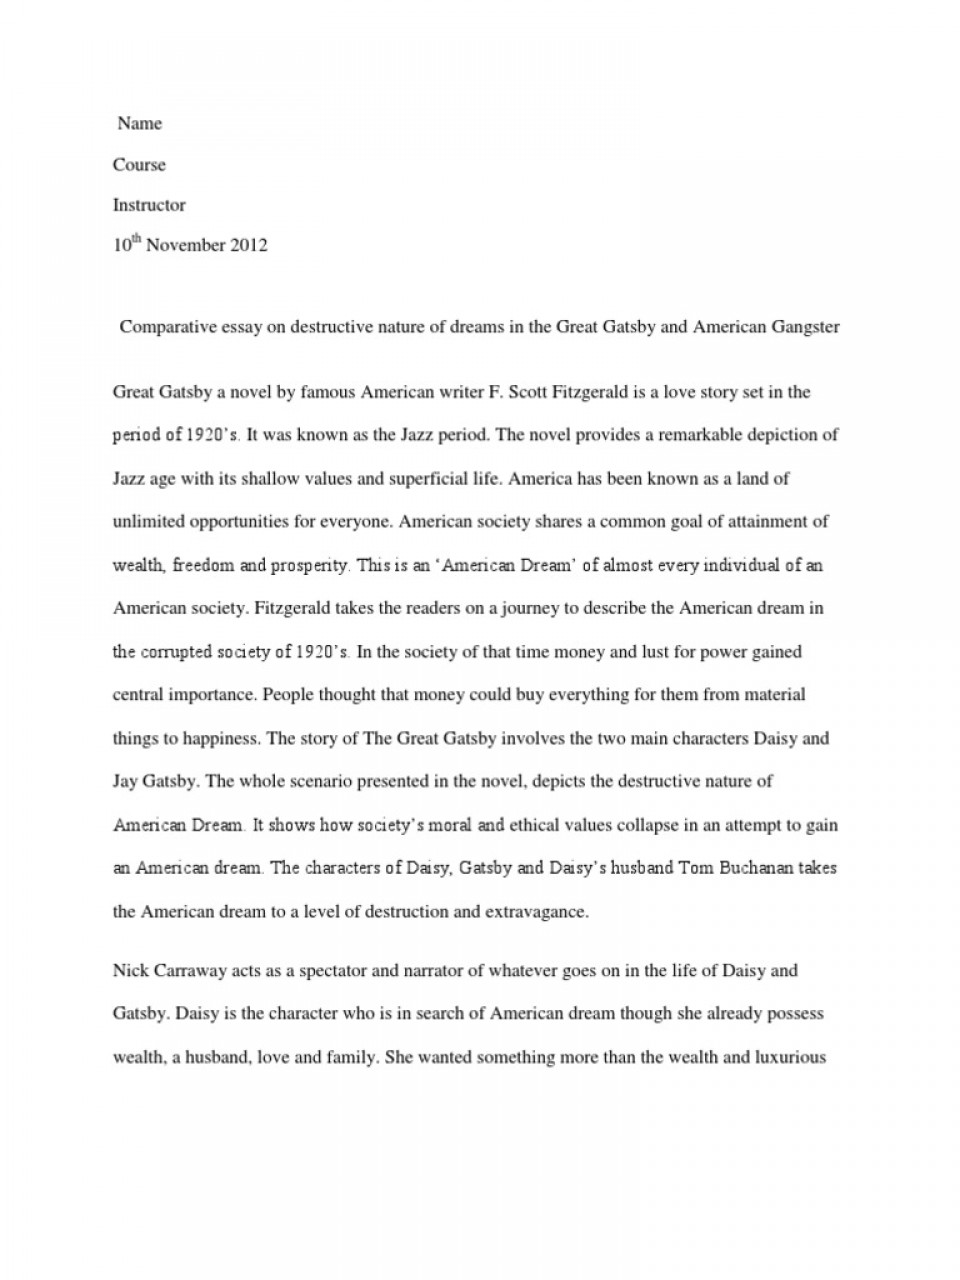 008 Comparative Essay On Destructive Nature Ofs  5884869ab6d87f259b8b49e2 Example American Unique Dream Conclusion Thesis Great Gatsby960